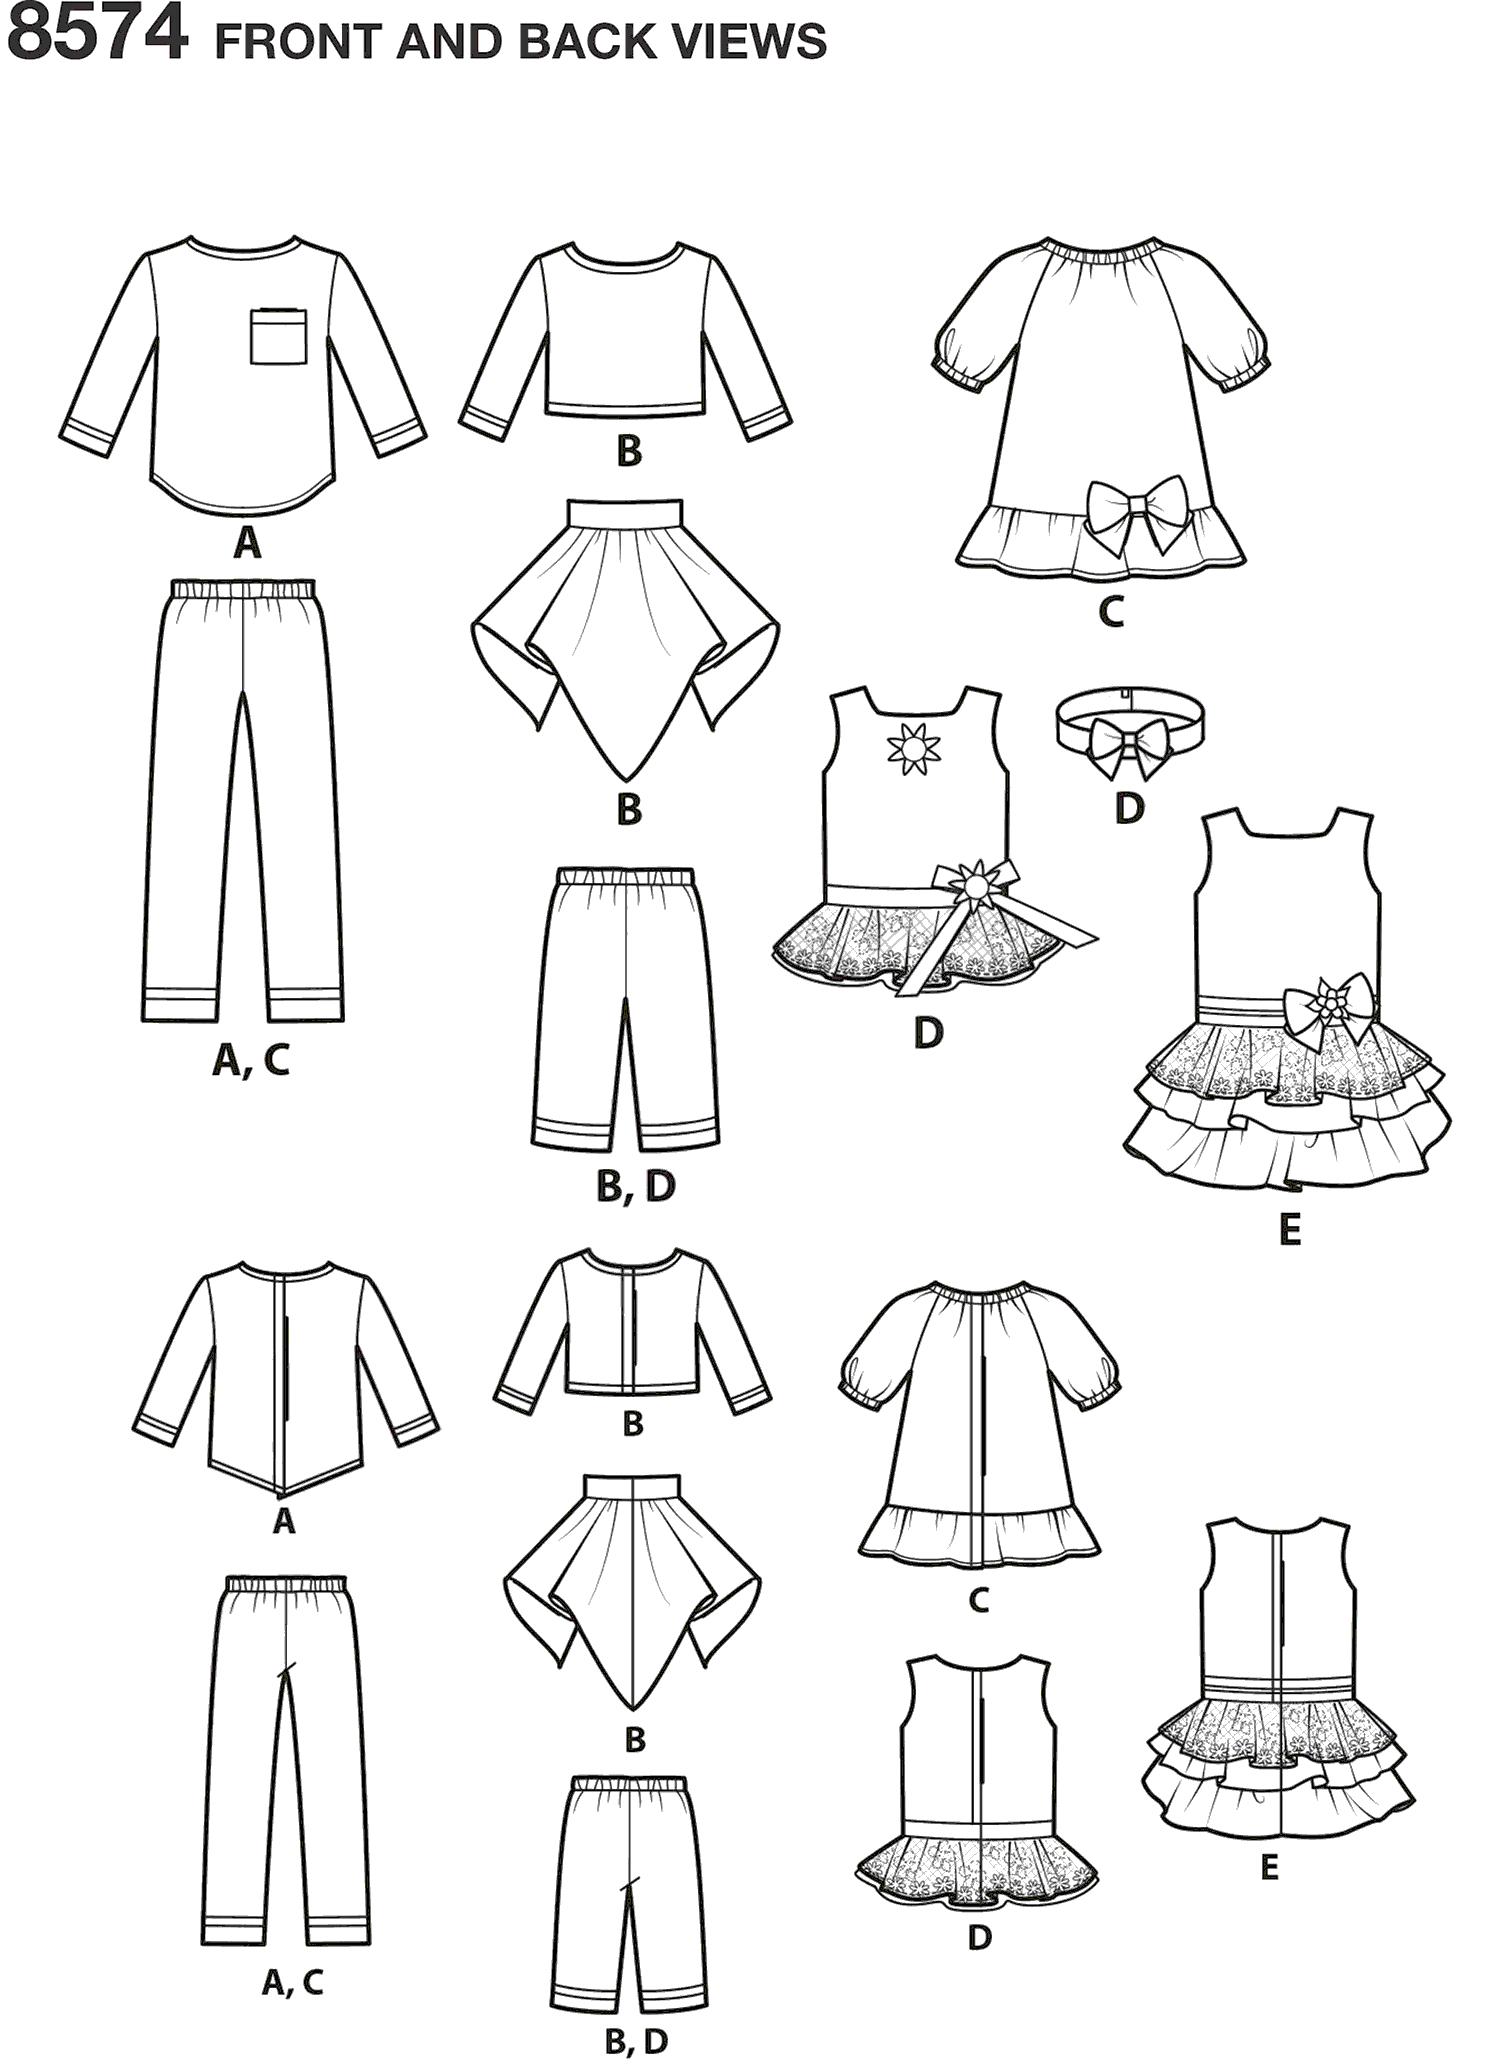 Simplicity Pattern 8574 14 Doll Clothes Line Art From Patternsandplains.com